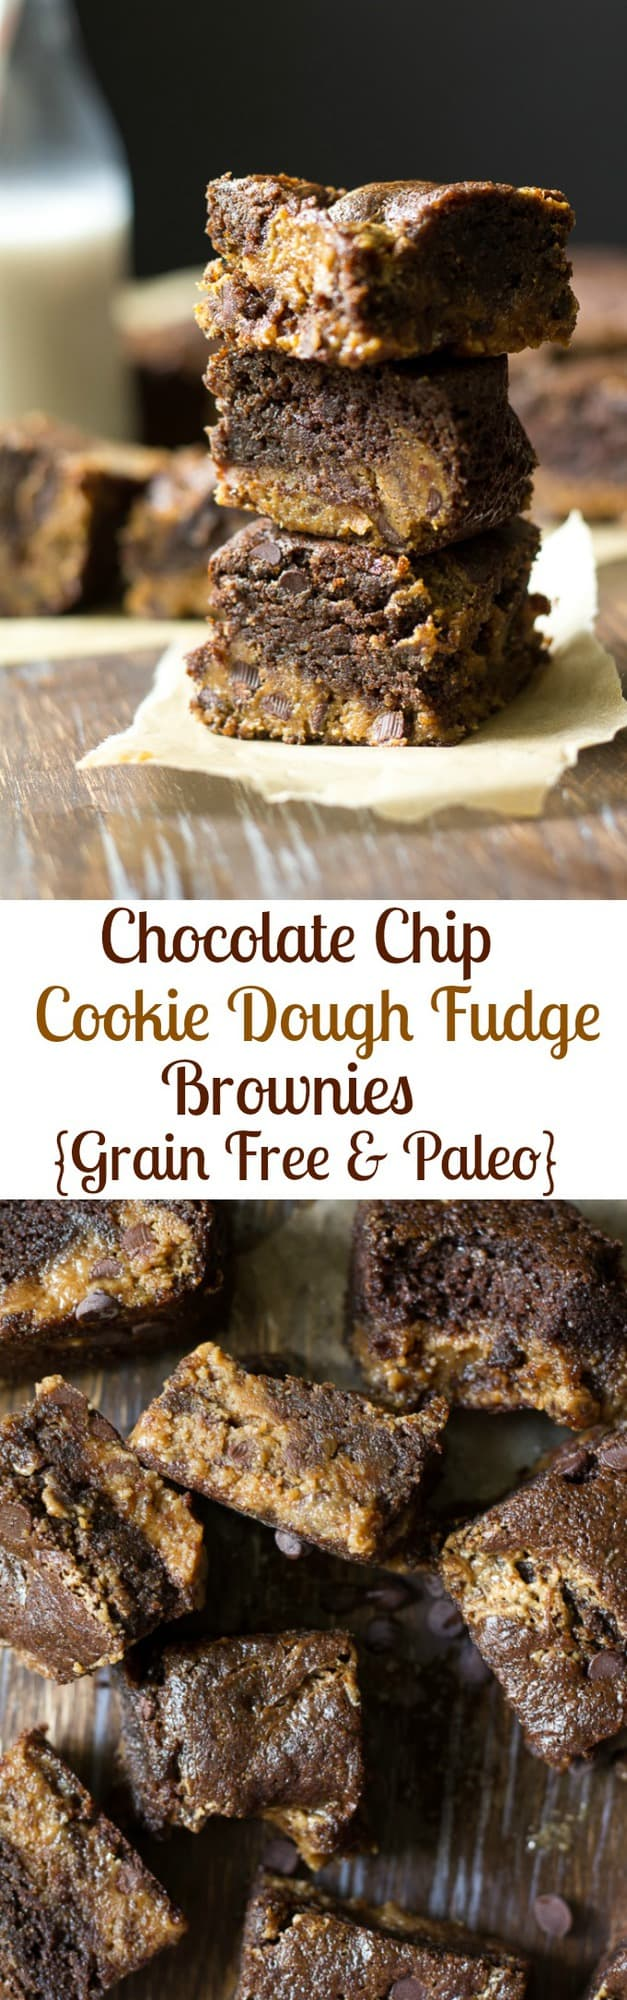 Chocolate chip cookie dough fudge brownies